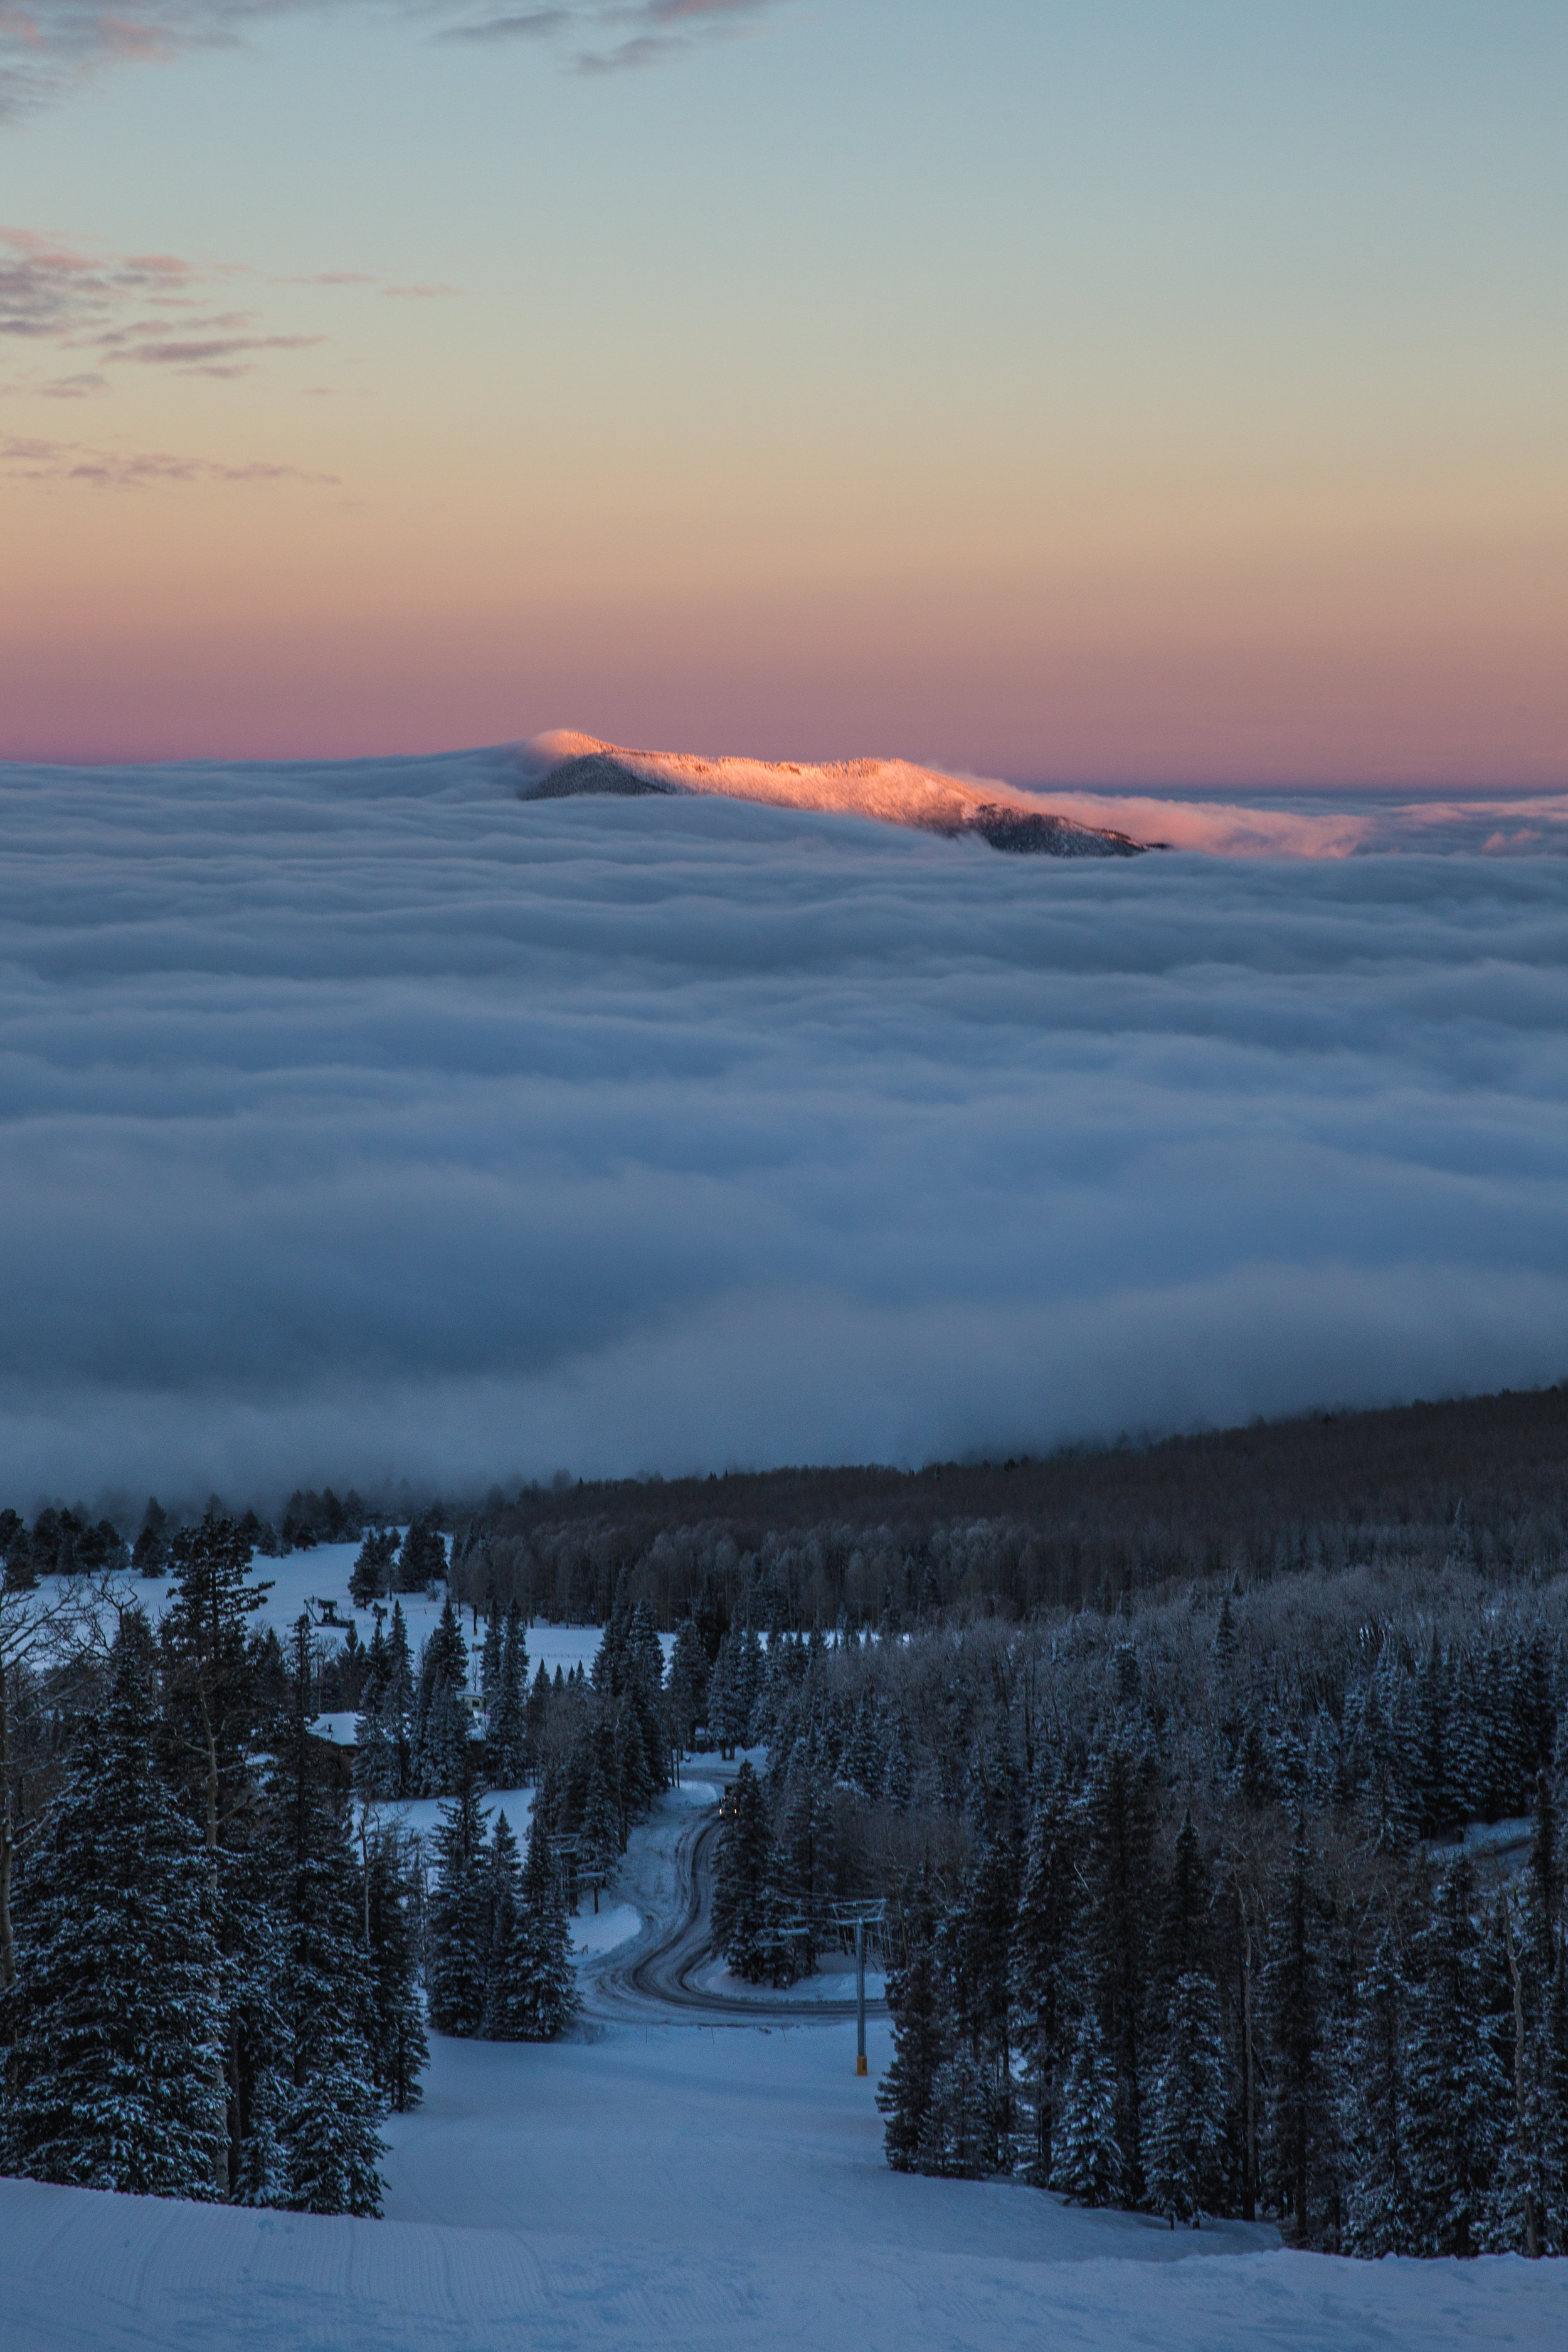 First Light hits Kendrick Peak above a layer of clouds. This picture was taken from Snowbowl. The presence of a ski resort on the mountain is controversial.